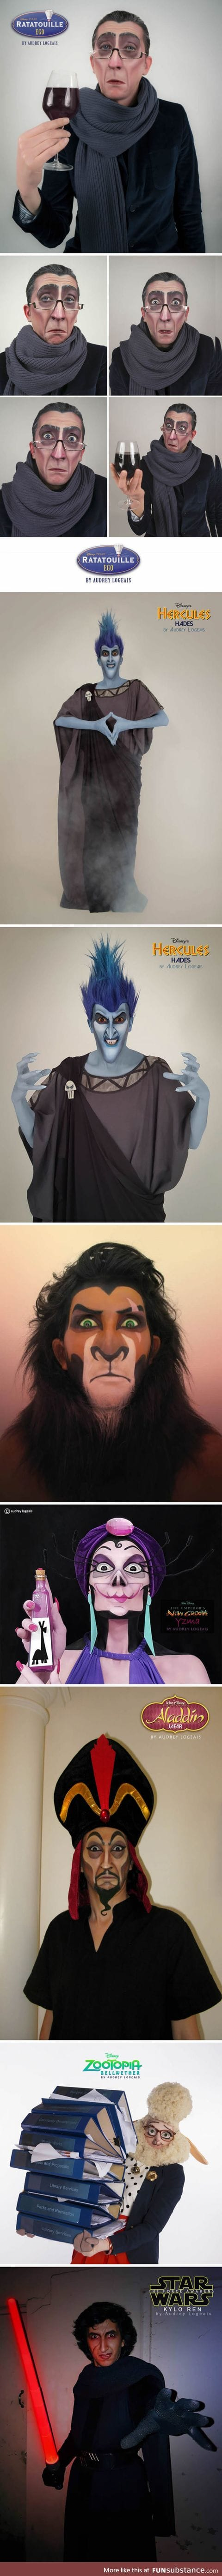 This makeup artist turns people into Disney villains